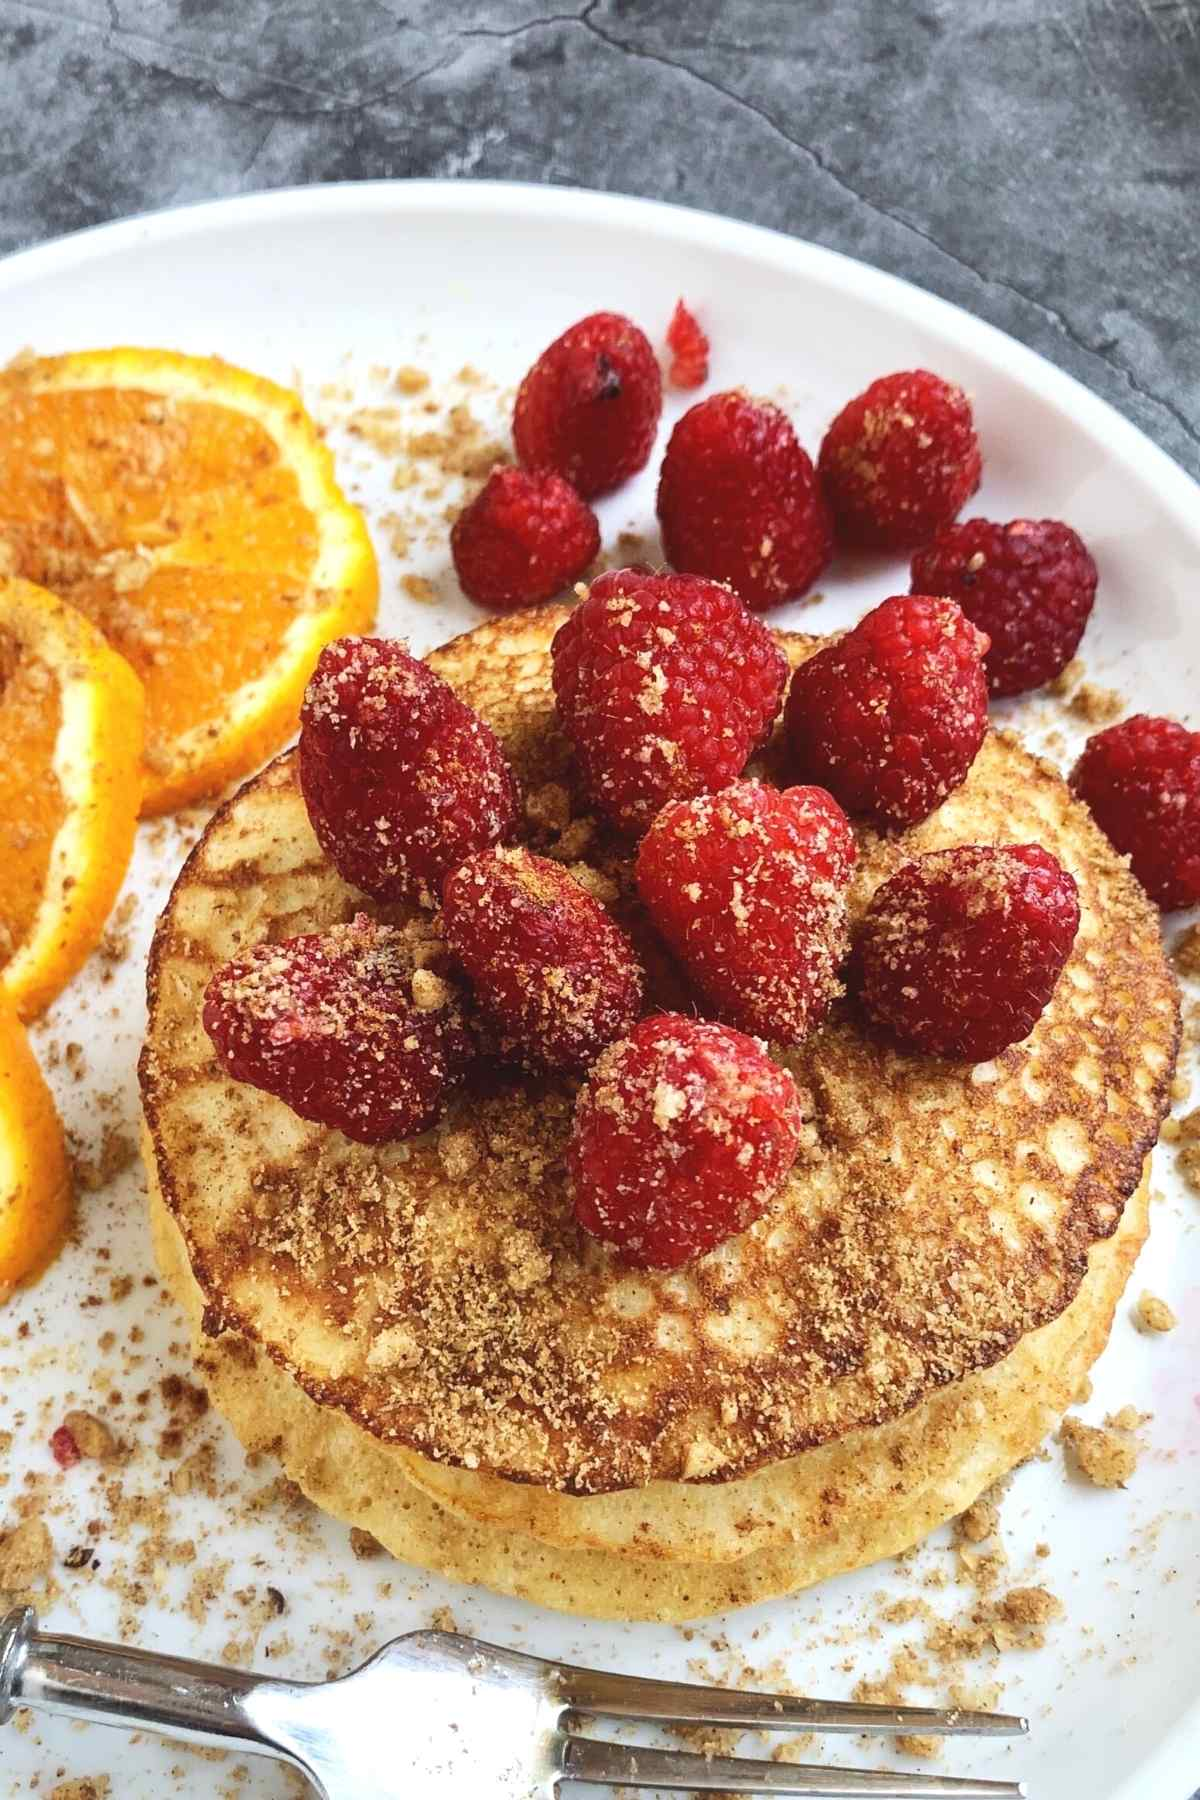 Stack of protein pancakes with raspberries on top. Fork in the foreground.